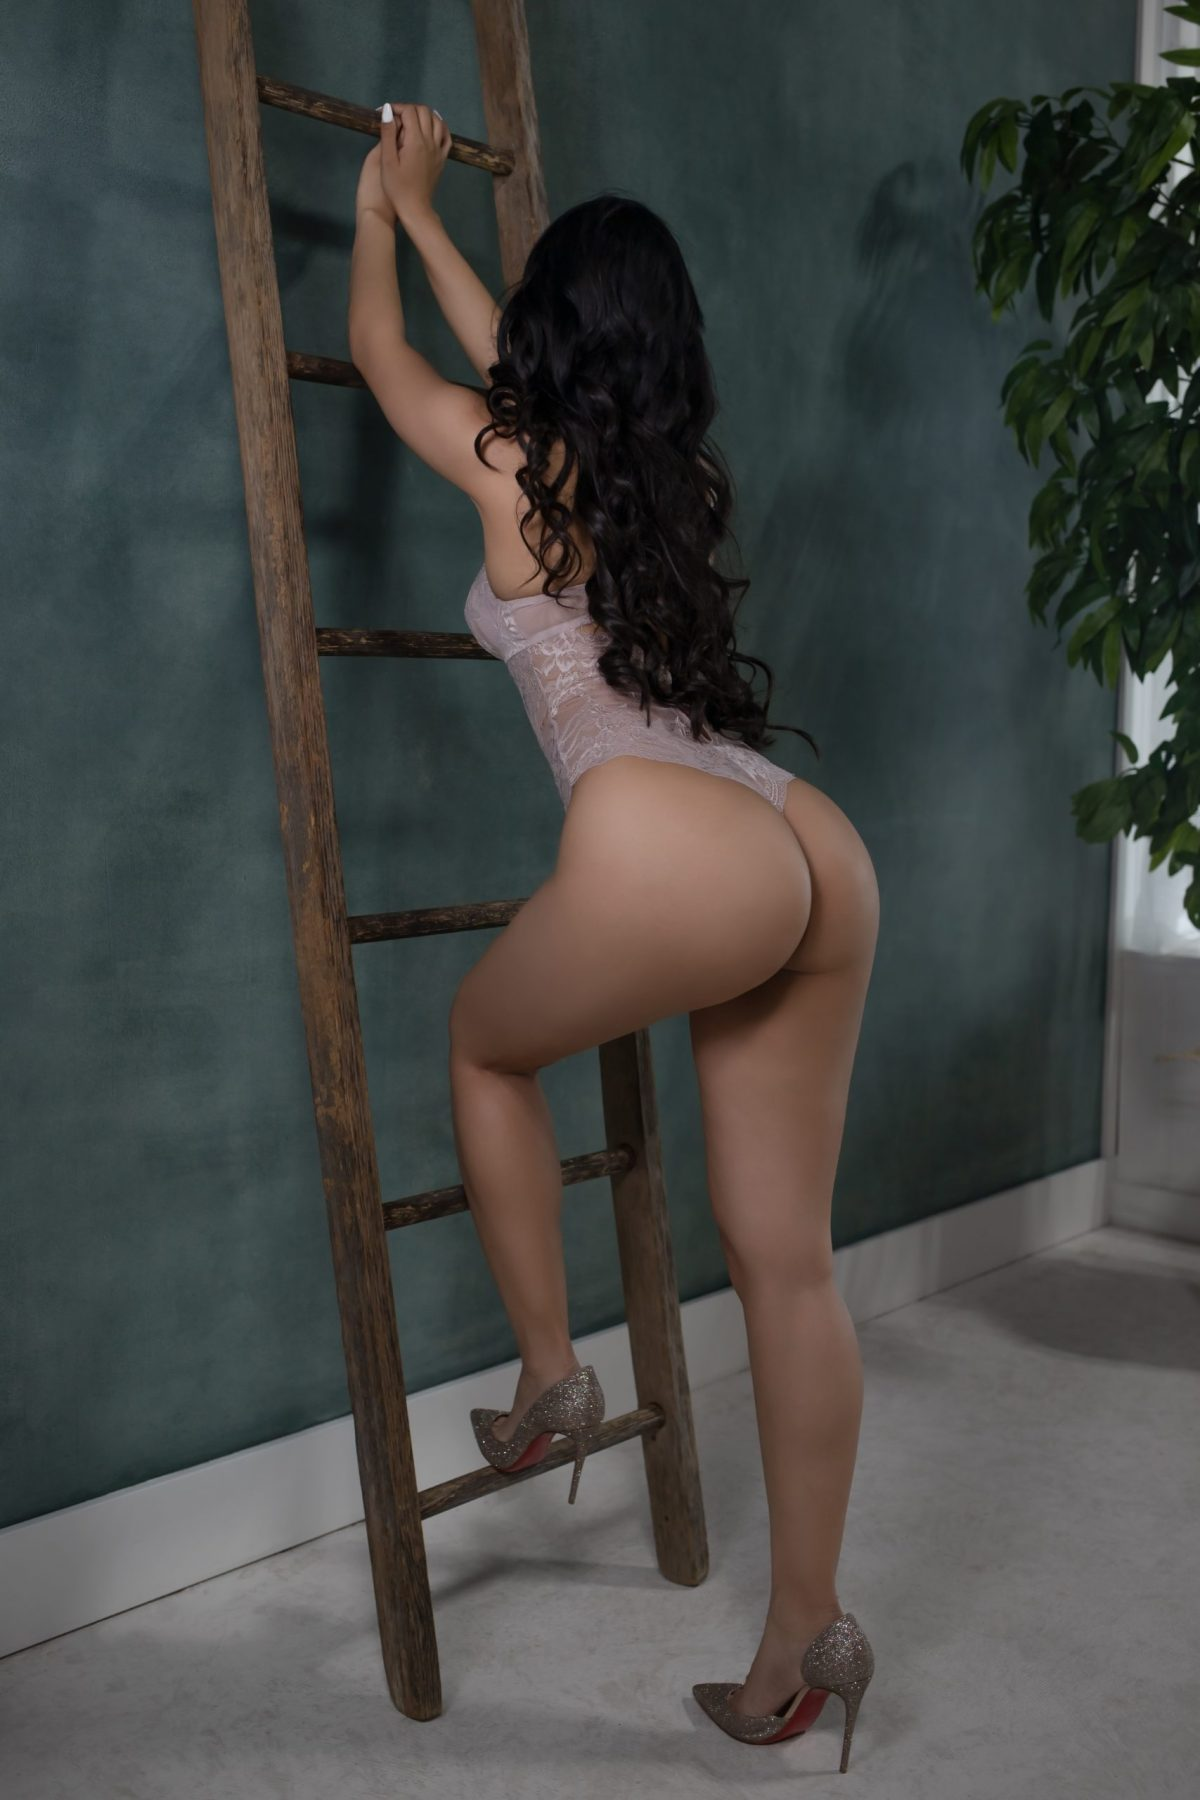 Toronto escorts companion upscale Shay Interests Duo Disability-friendly Non-smoking Age Young Figure Slender Petite Breasts Natural Hair Raven-Haired Brunette Ethnicity Asian Tattoos Small Arrival New Photos